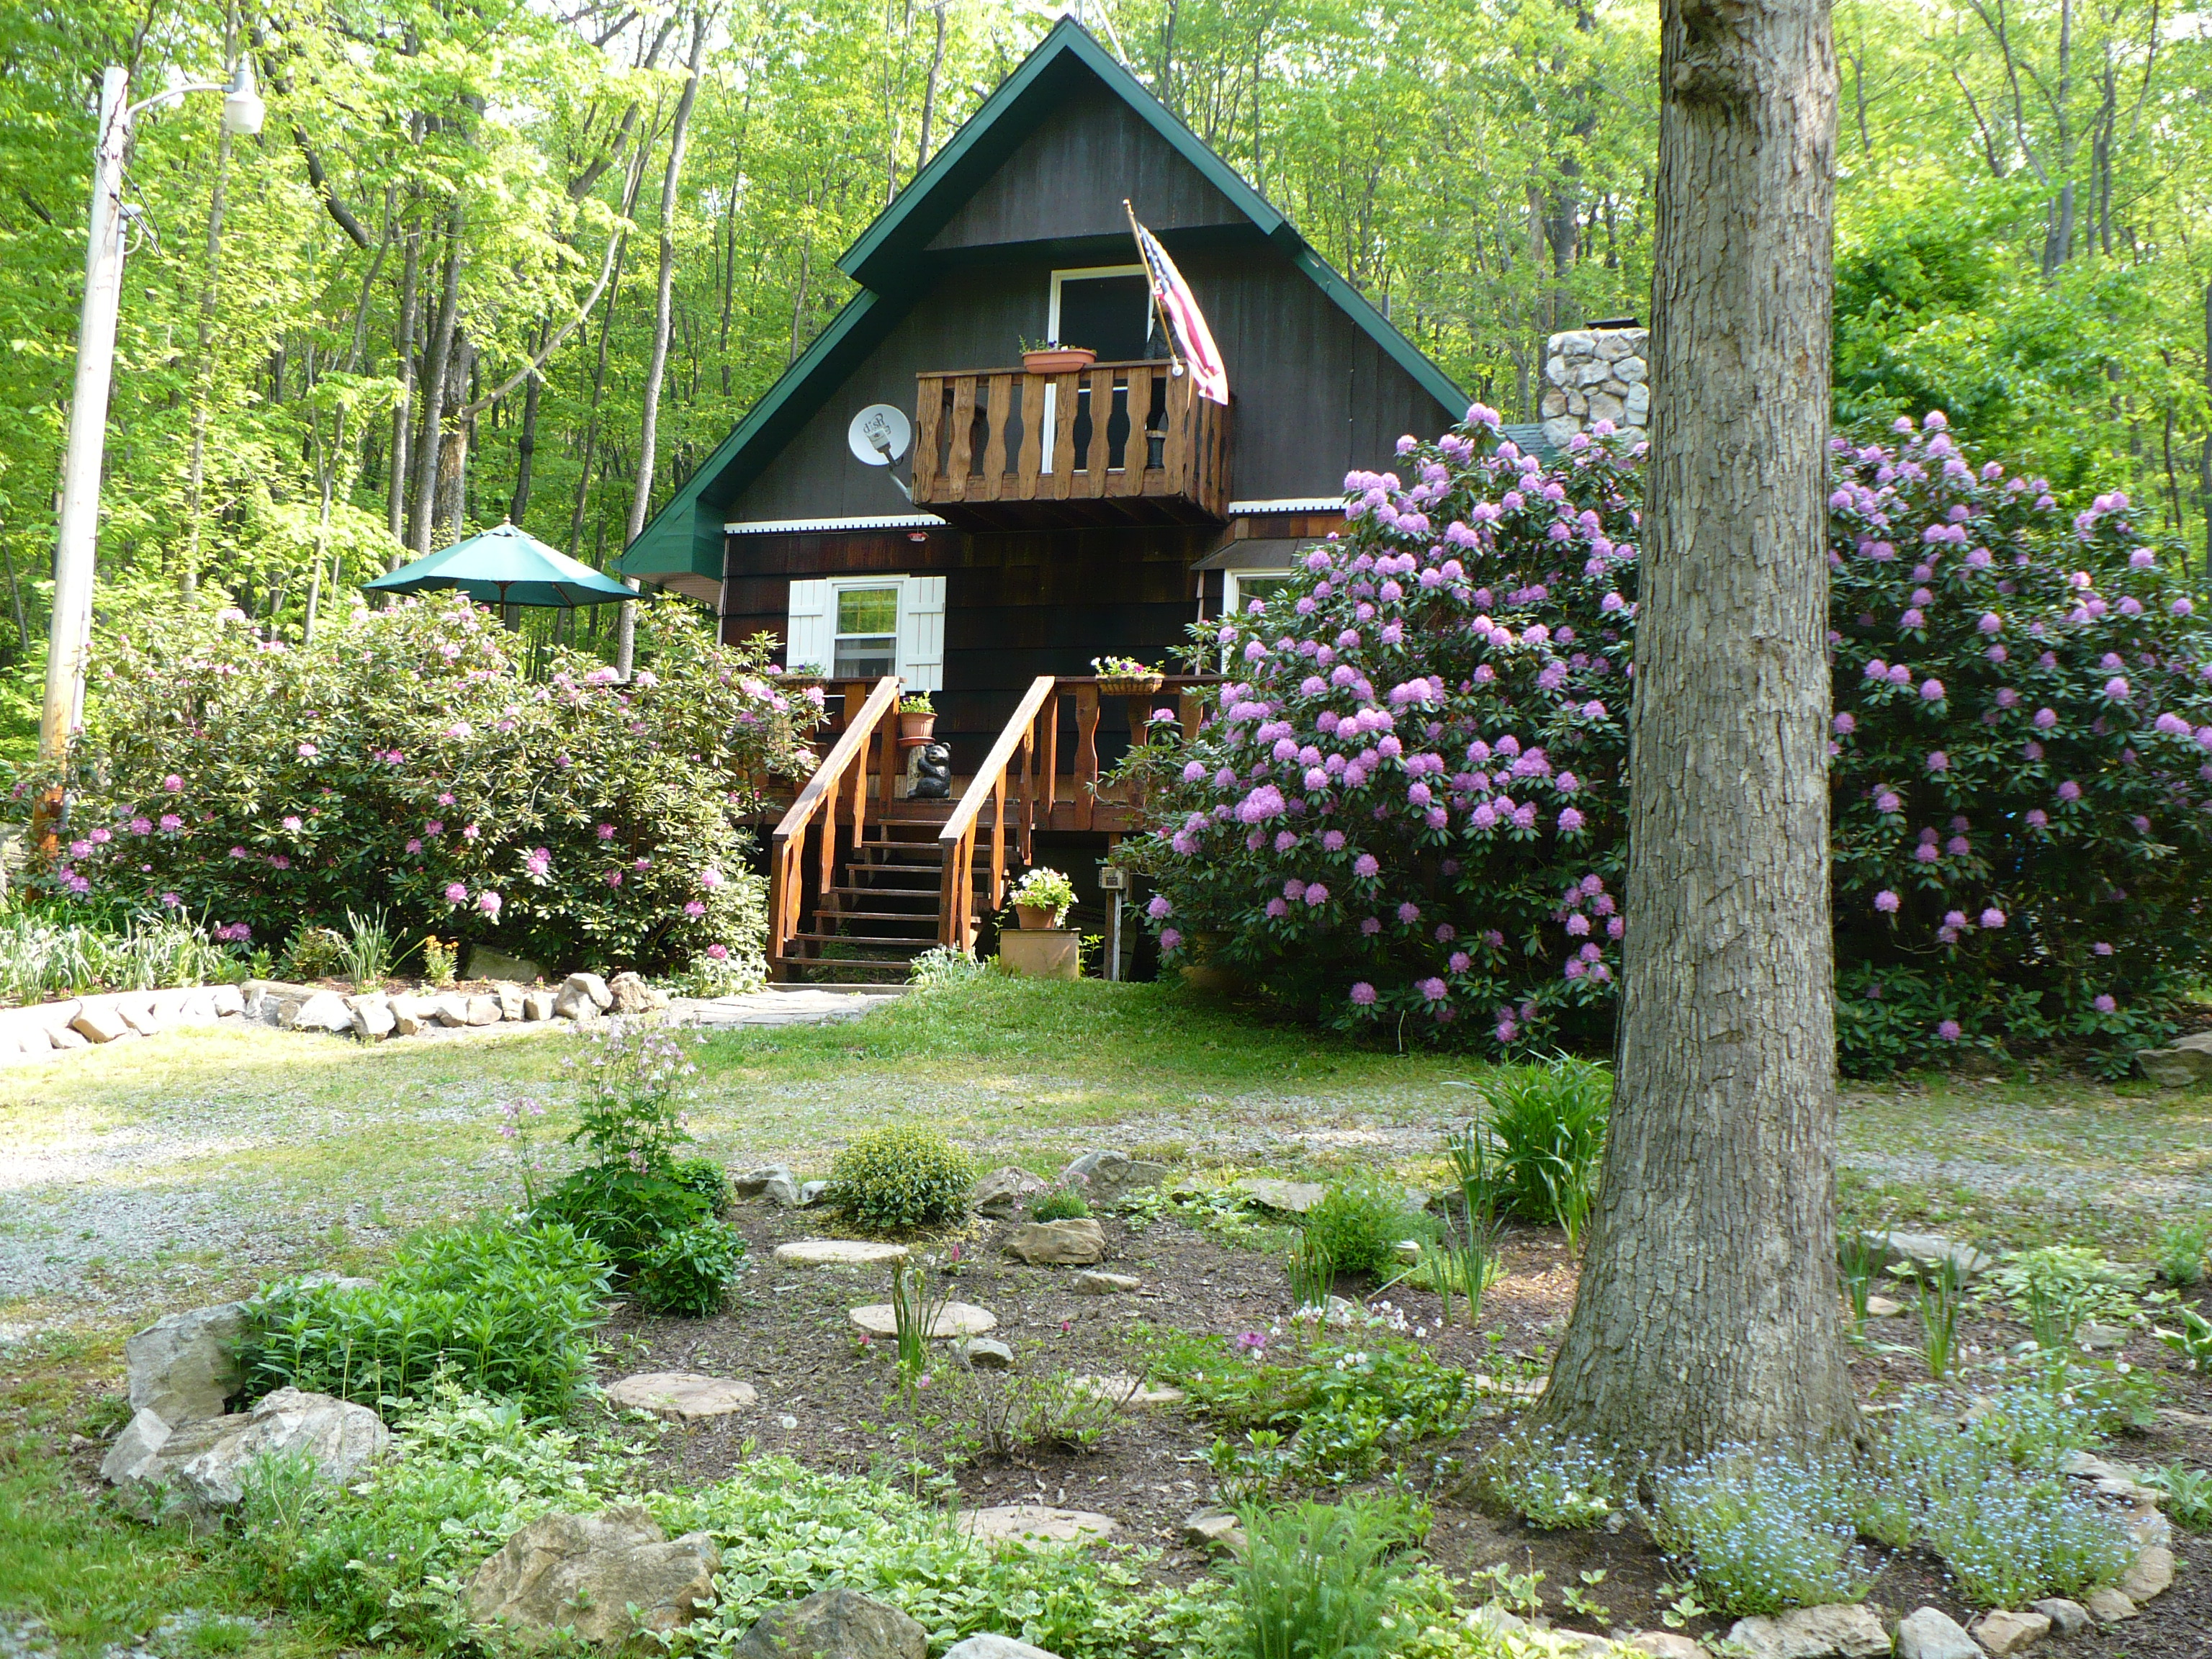 home vacation welcome mountains to shot the into cabins laurel cottage at our of ligonier visit pennsylvania charming tucked beauty highlands